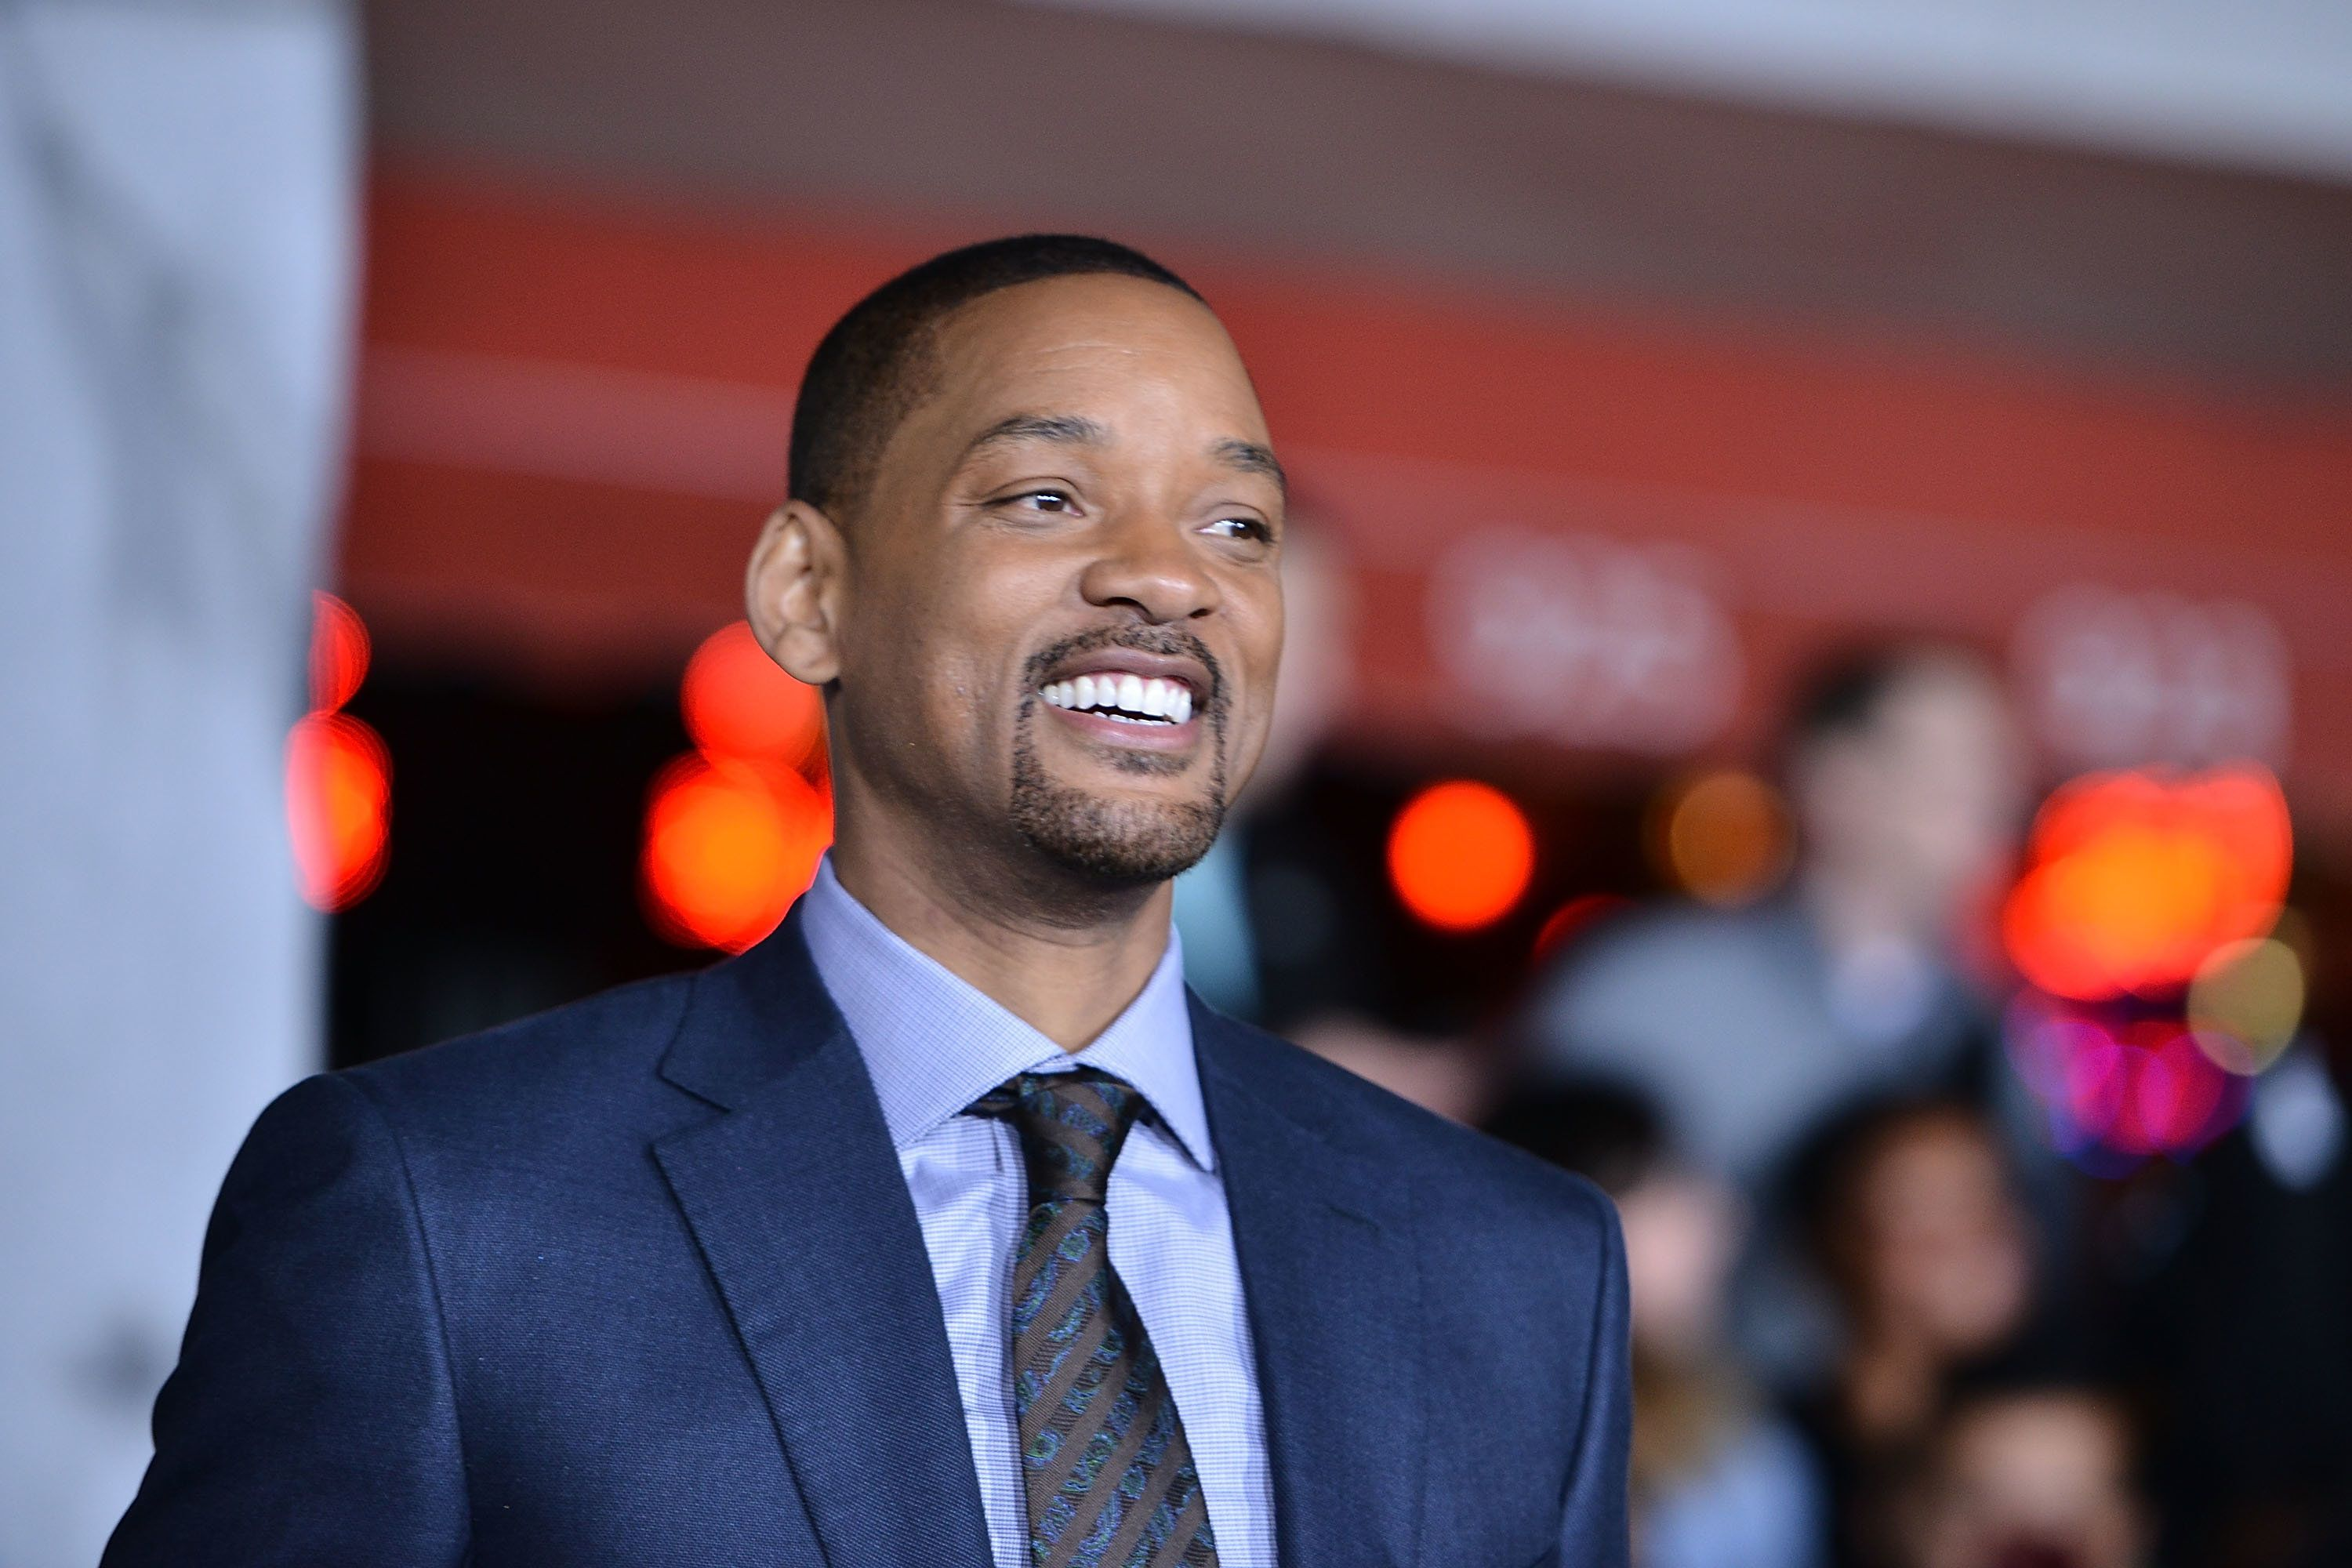 WESTWOOD, CA - DECEMBER 13:  Will Smith attends the premiere of Netflix's 'Bright' at Regency Village Theatre on December 13, 2017 in Westwood, California.  (Photo by Araya Diaz/WireImage)